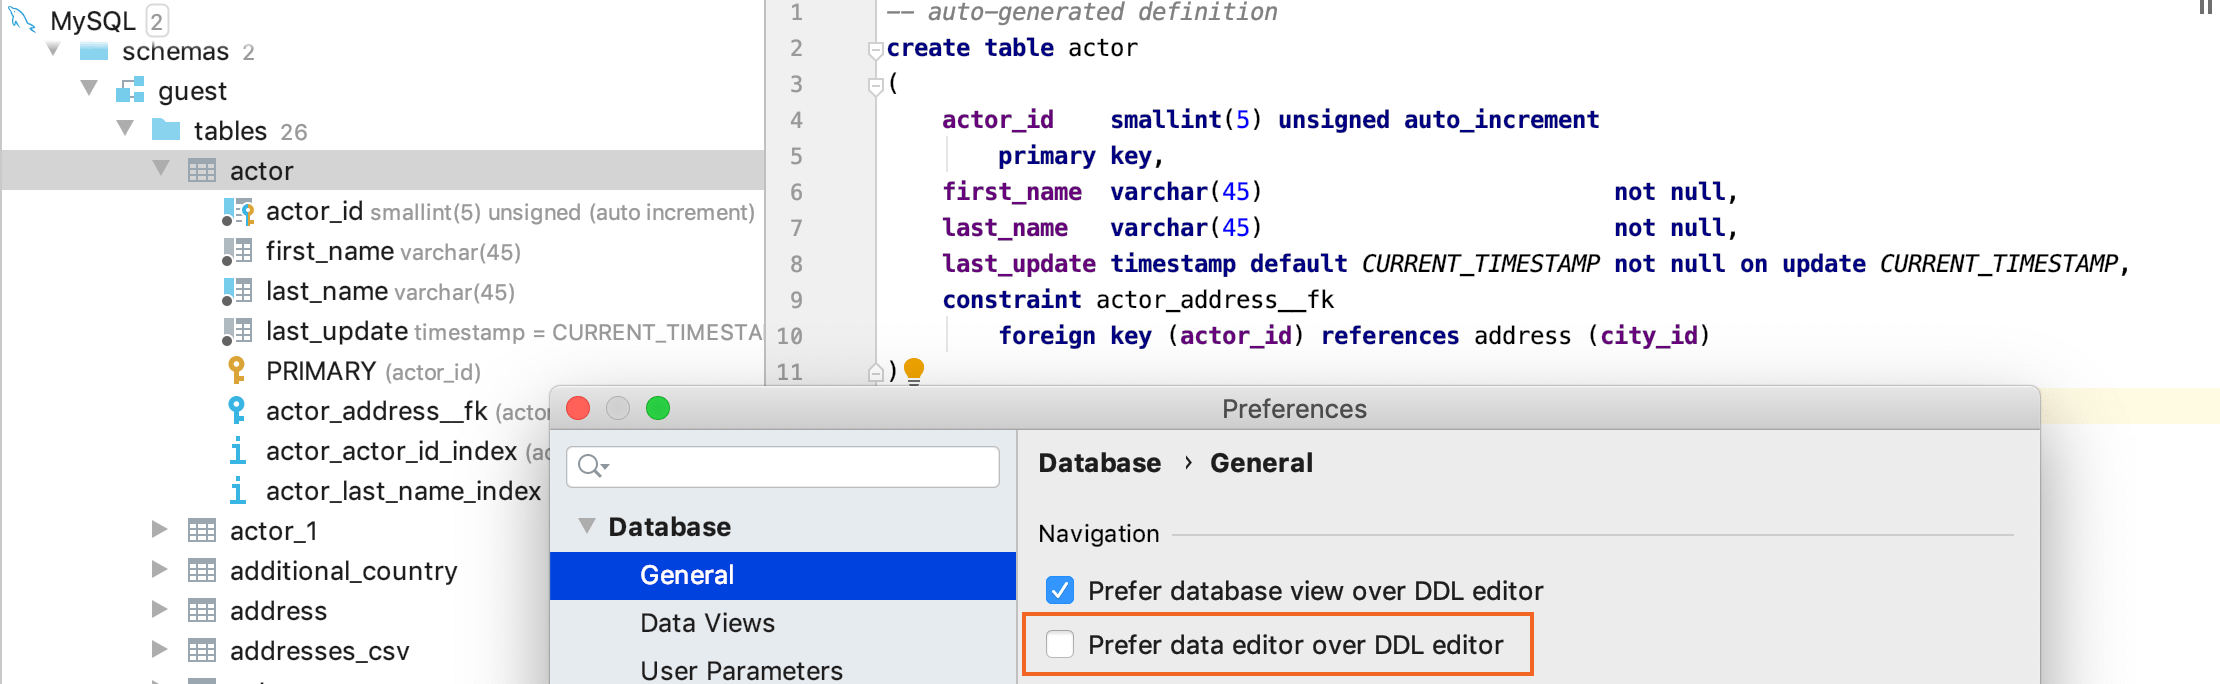 Open a DDL definition of an object in the database tree view